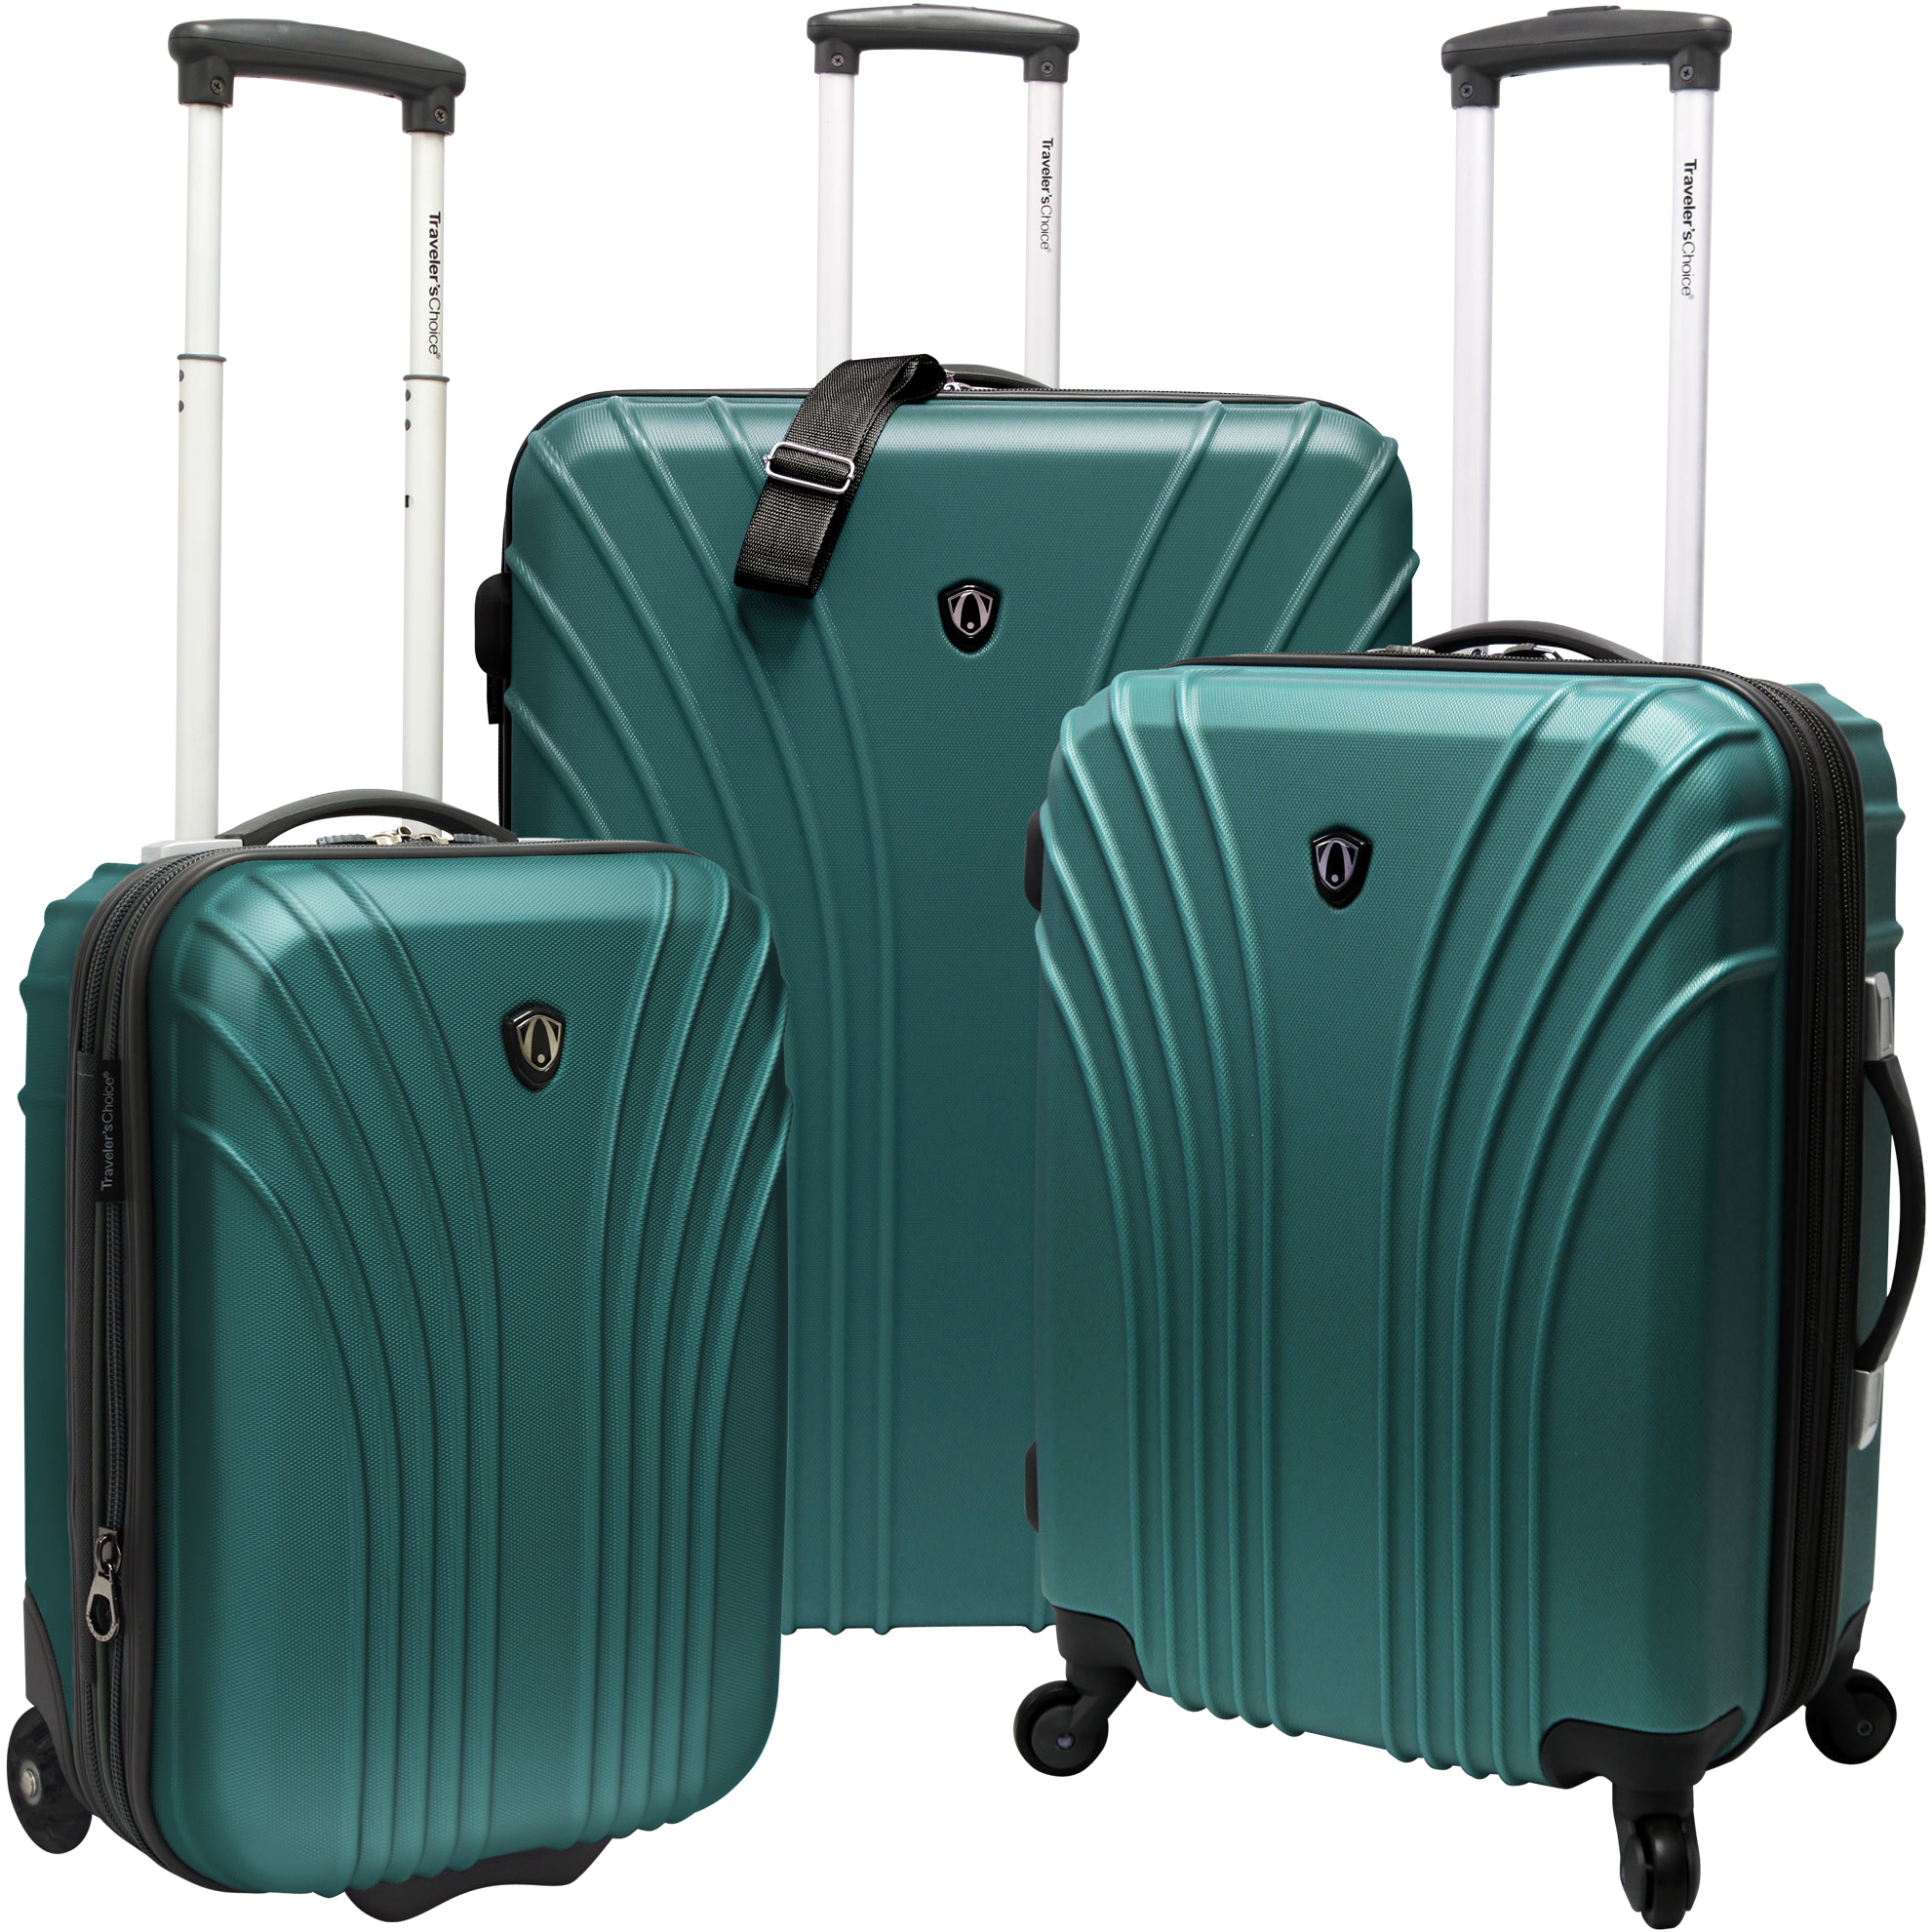 f443a4717 Traveler's Choice - Hardsided 2-Piece Ultra Lightweight Spinner Luggage Set  - Walmart.com